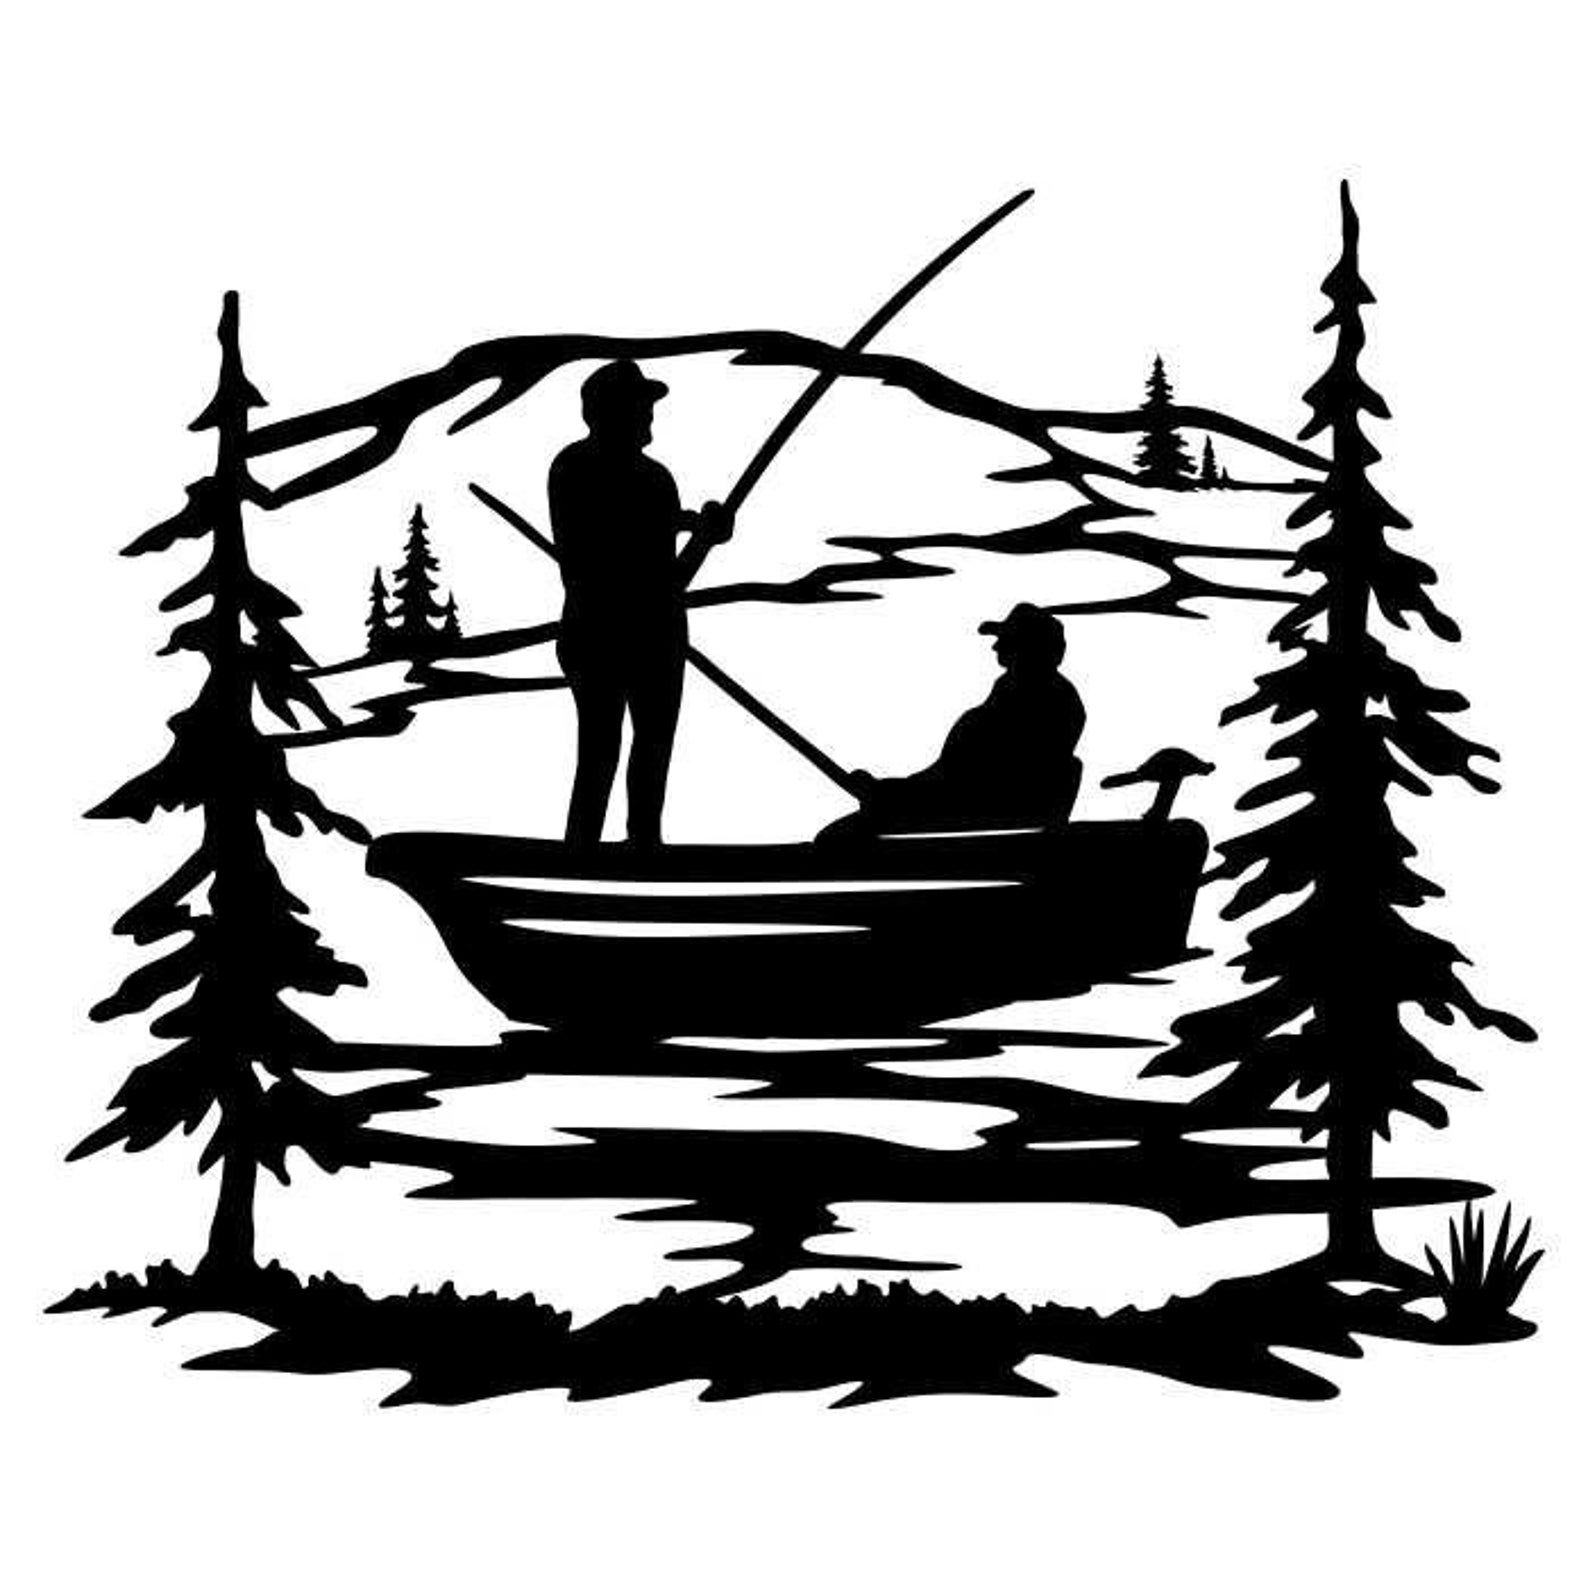 Download Fishing Boat Clipart Silhouettes Scene Eps Dxf Pdf Png Svg Ai Files Plasma Cnc In 2021 Fish Silhouette Boat Clipart Boat Silhouette